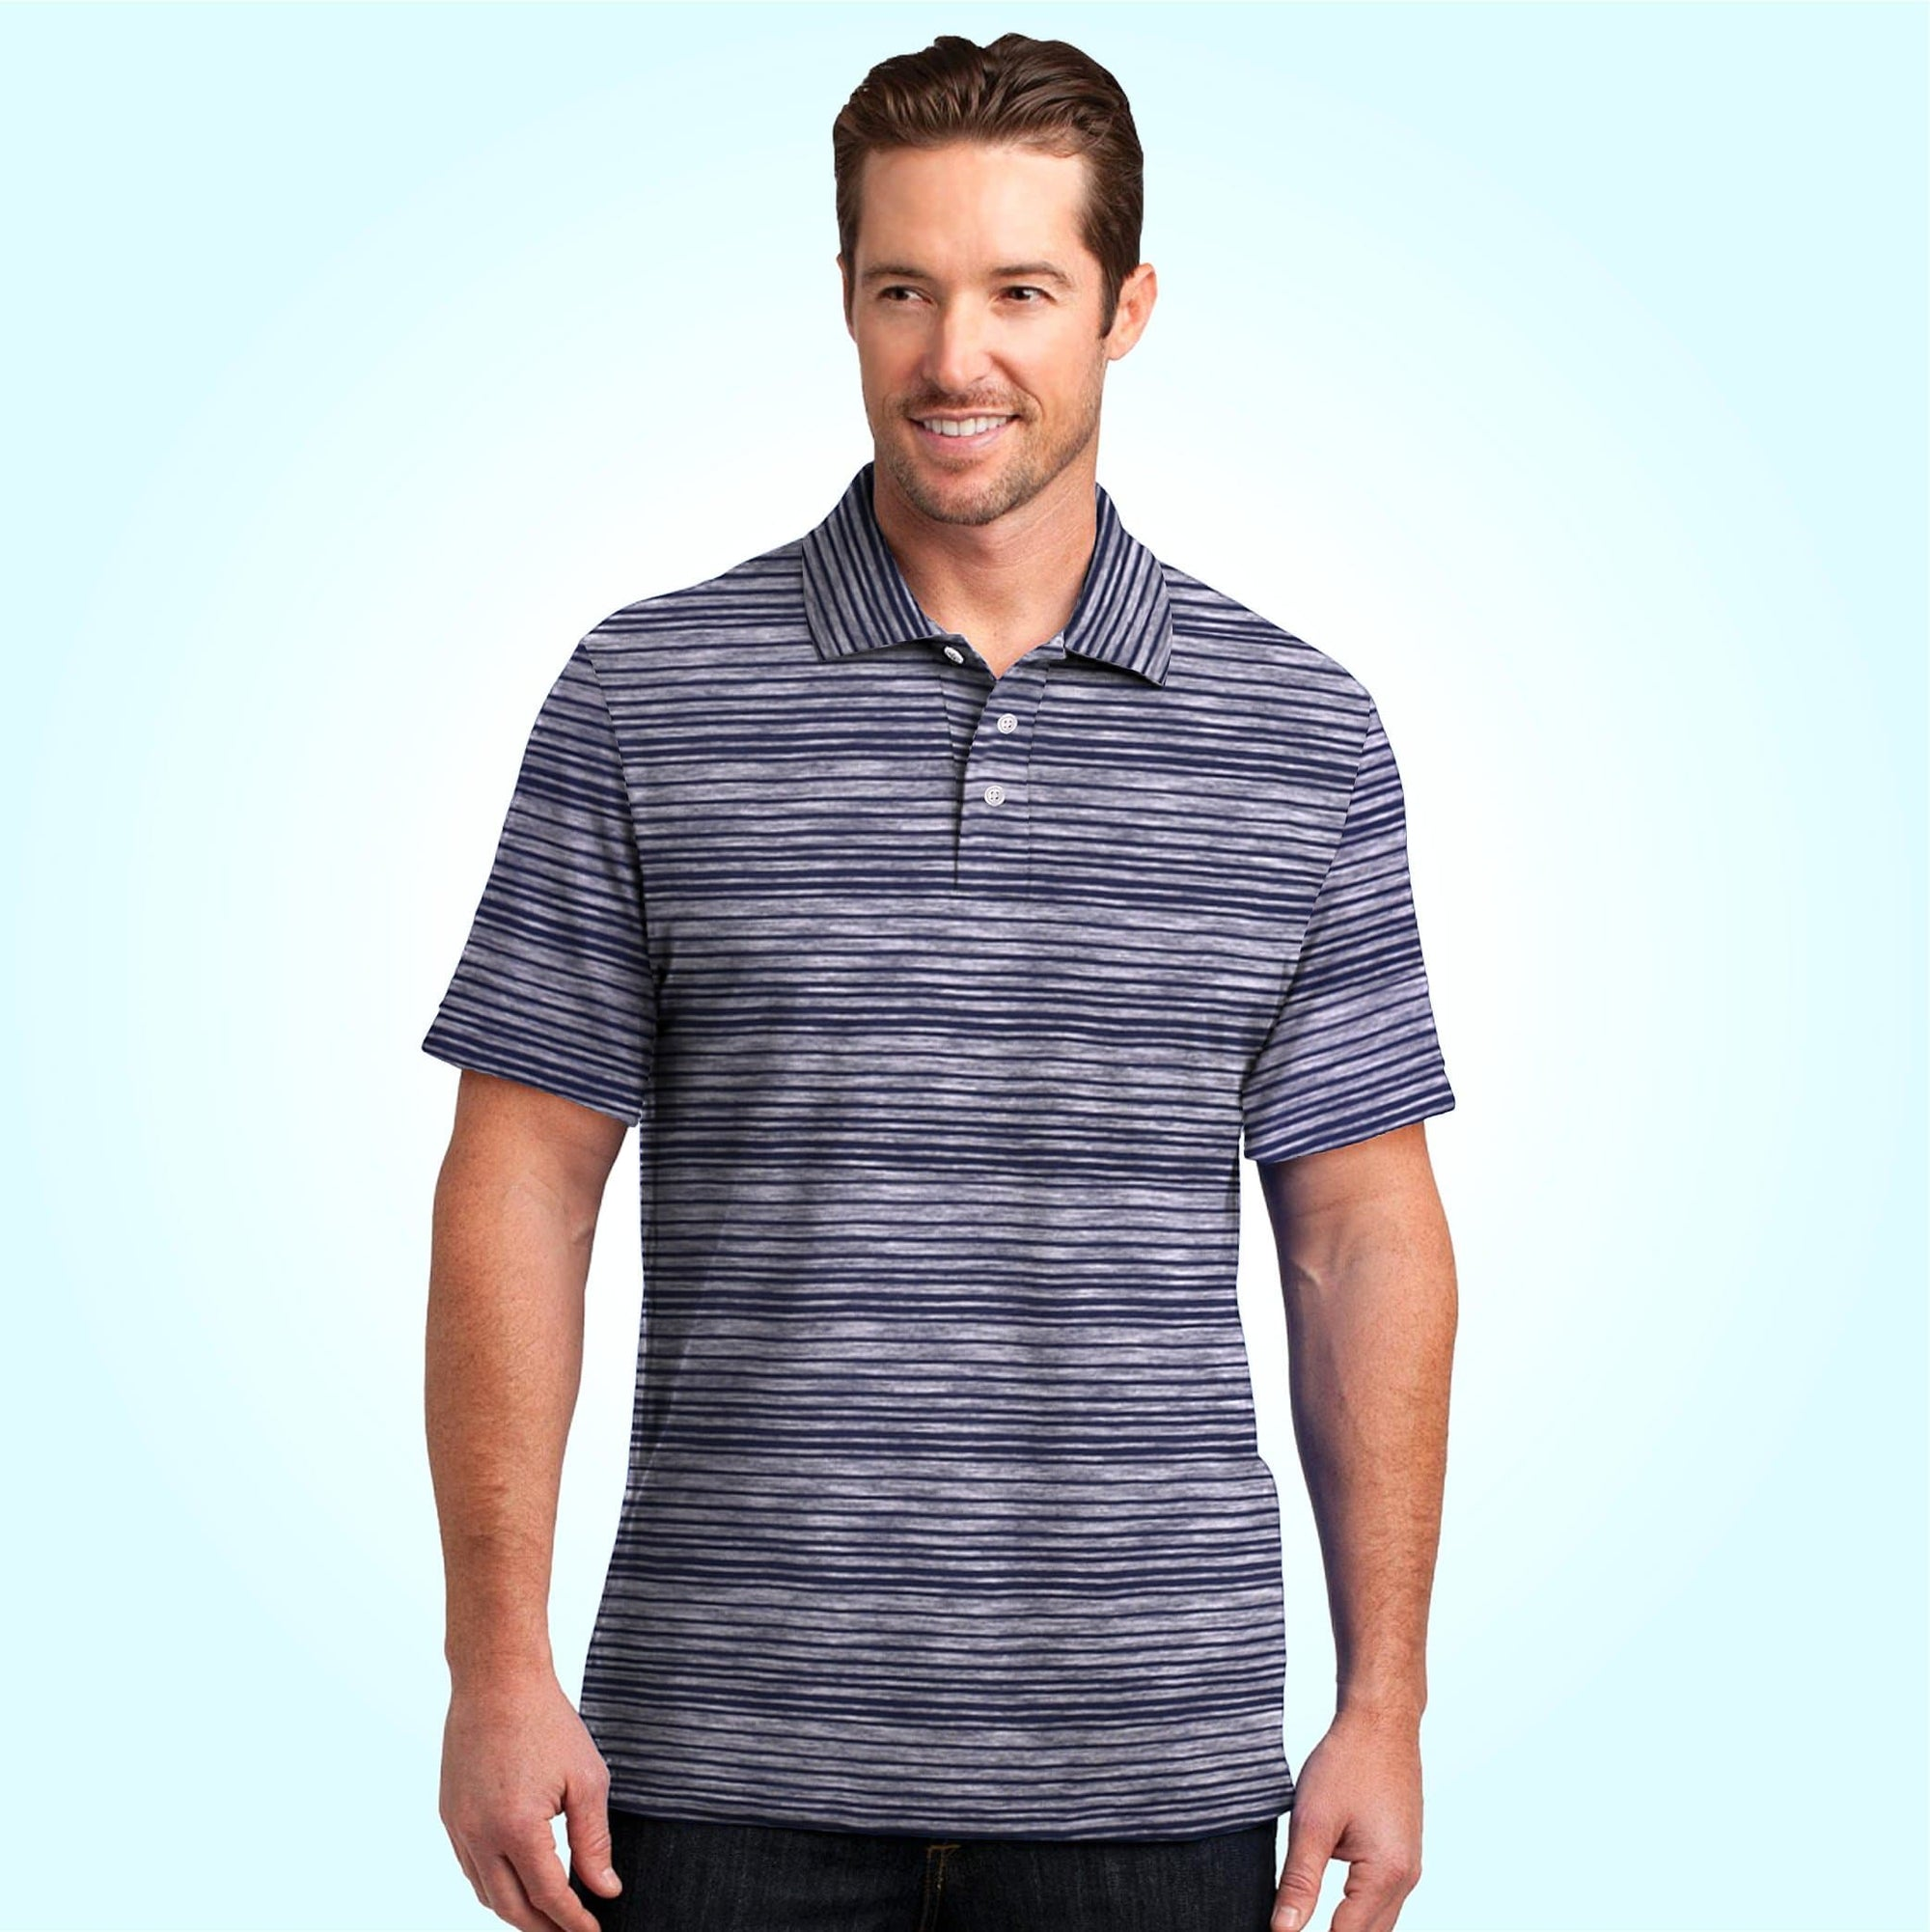 Henry James Men's Polo Shirt Navy / S HENRY JAMES EXCLUSIVE STRIPER SHORT SLEEVE POLO SHIRT